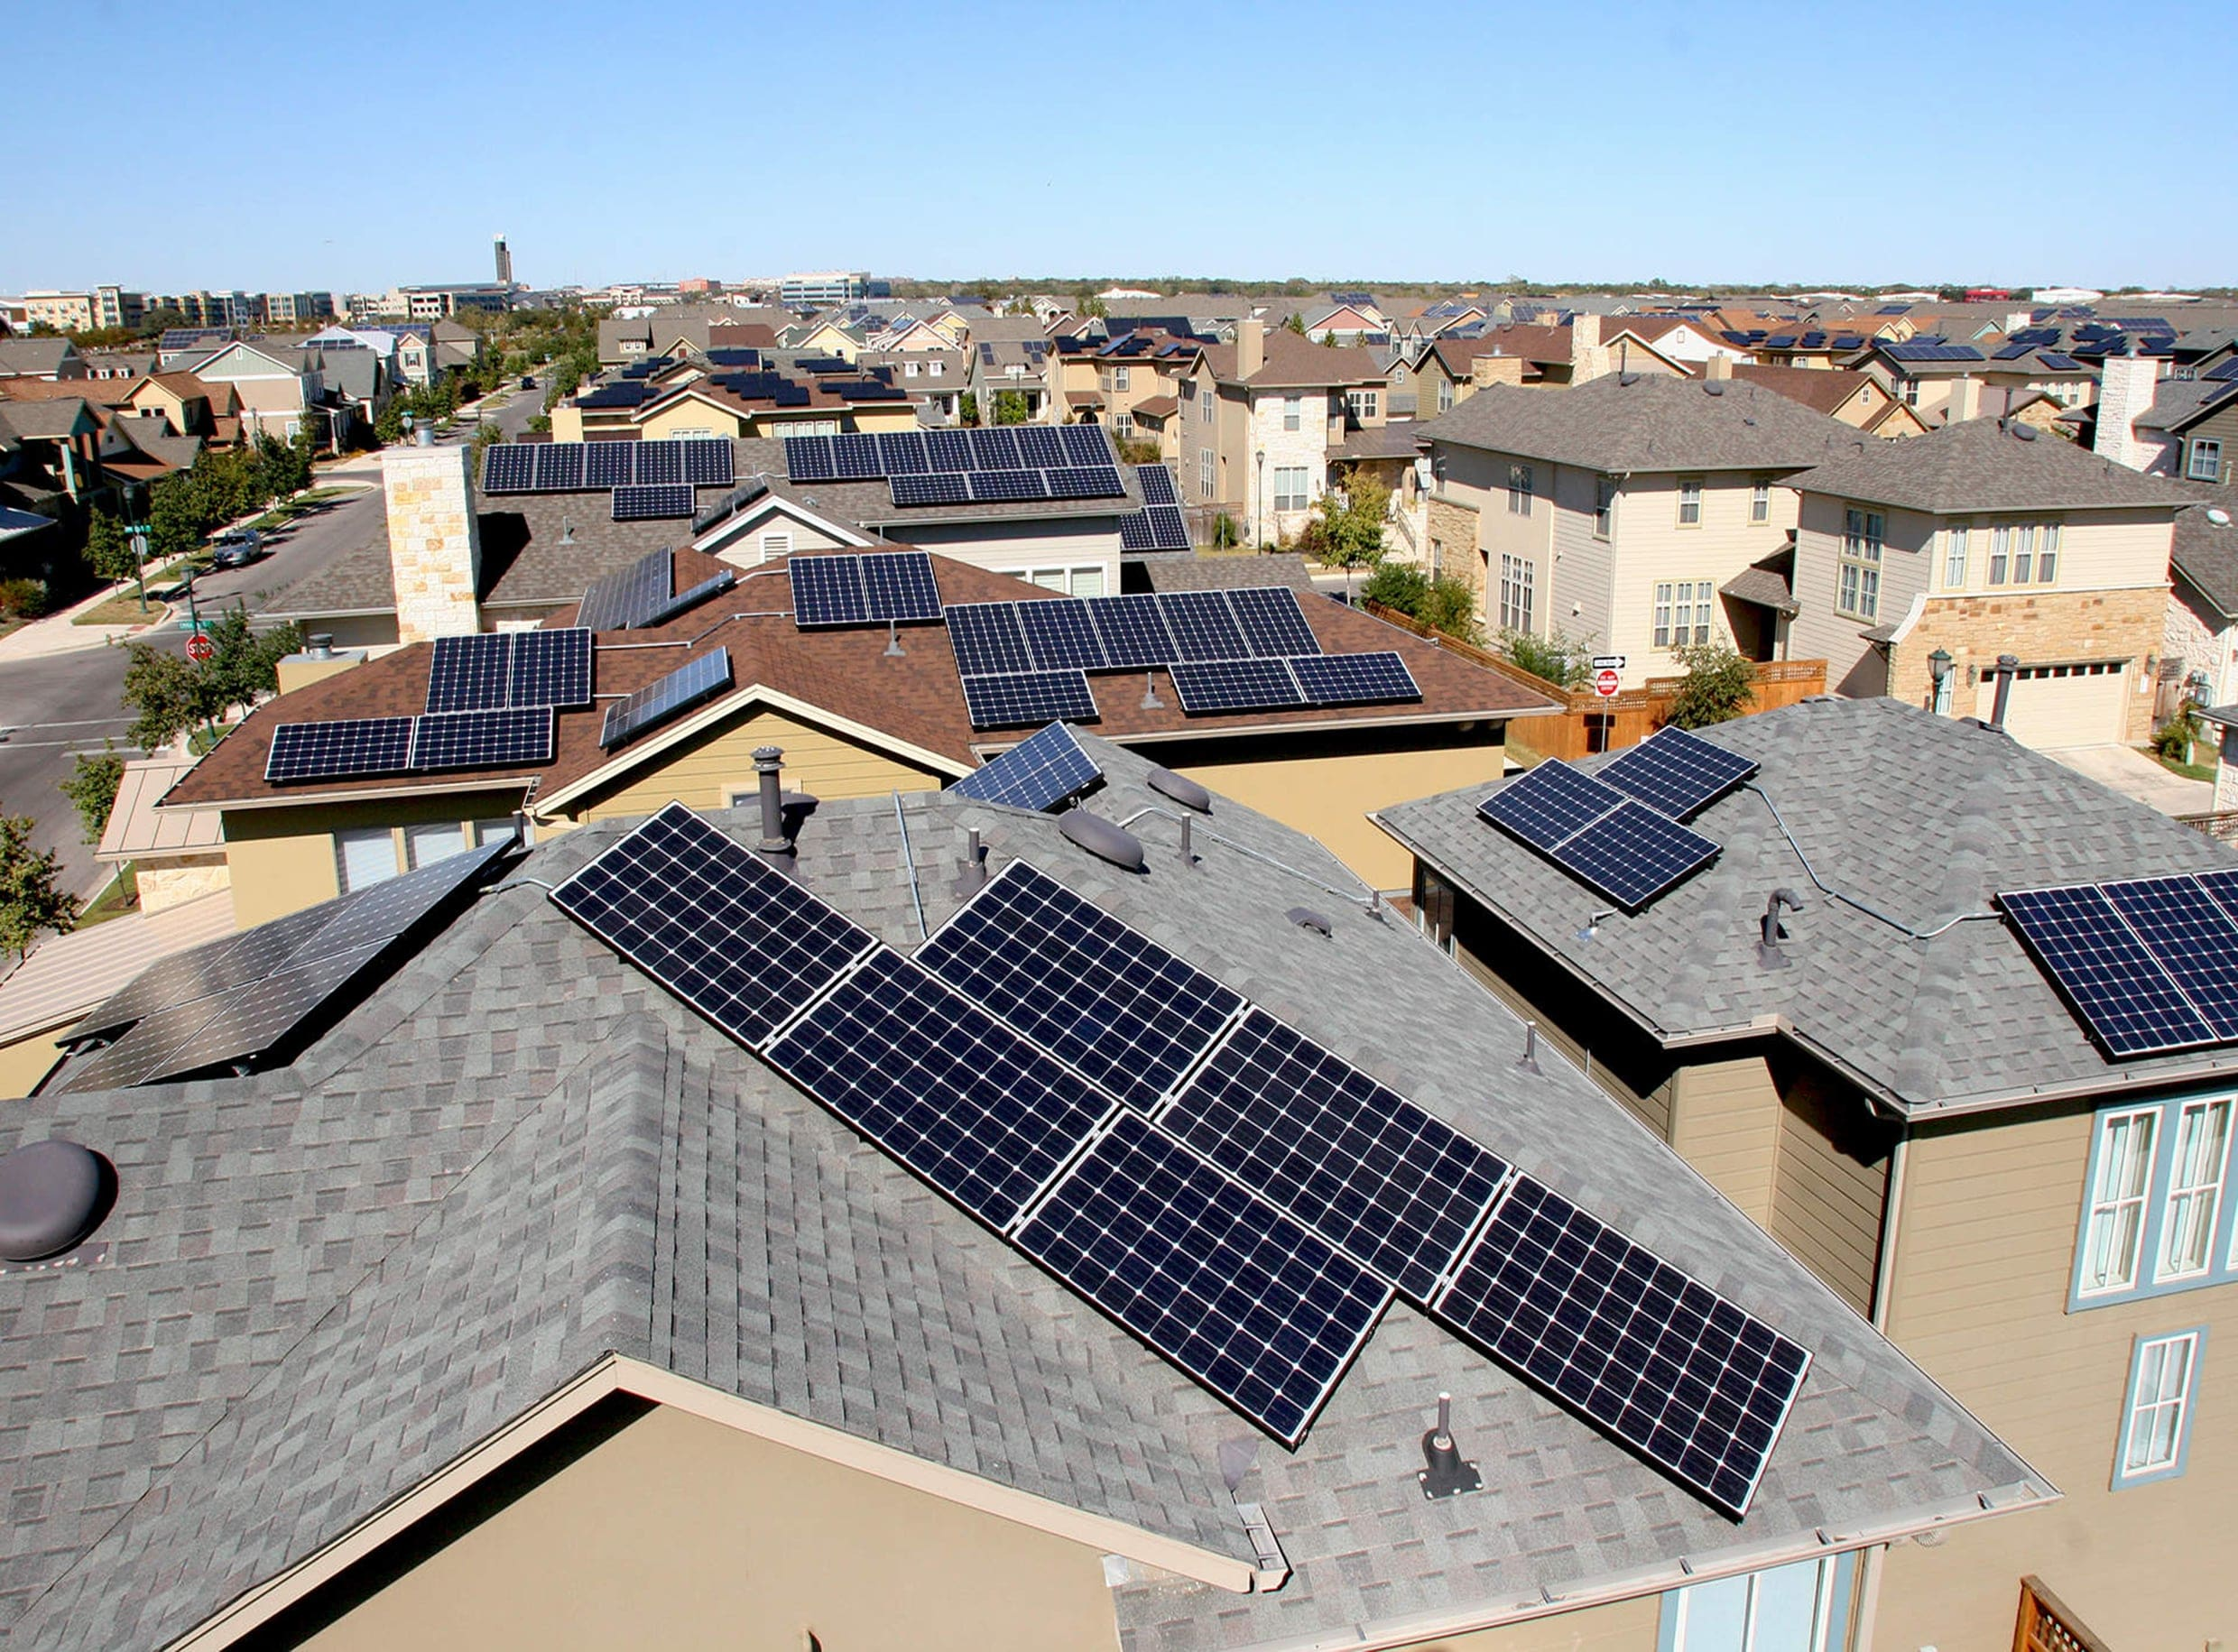 Photo: Private Buildings with PV Panels in the Mueller Community, Austin, Texas, USA, Connected to Electric Drives and Joined to a Utility Distributed Power Grid by the Federal Program SHINES -